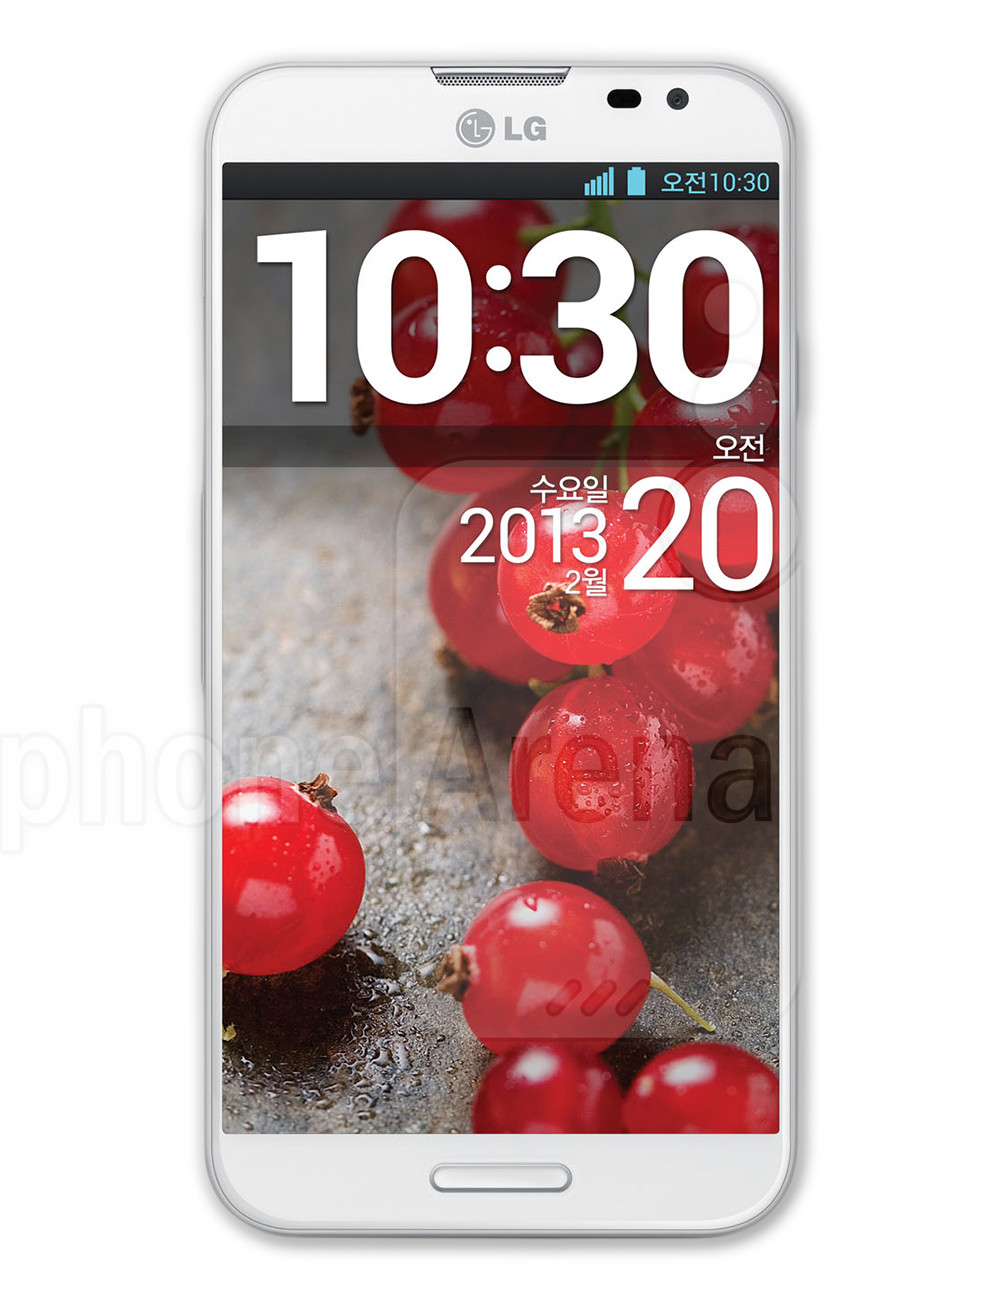 LG Optimus G Pro Officially Launched